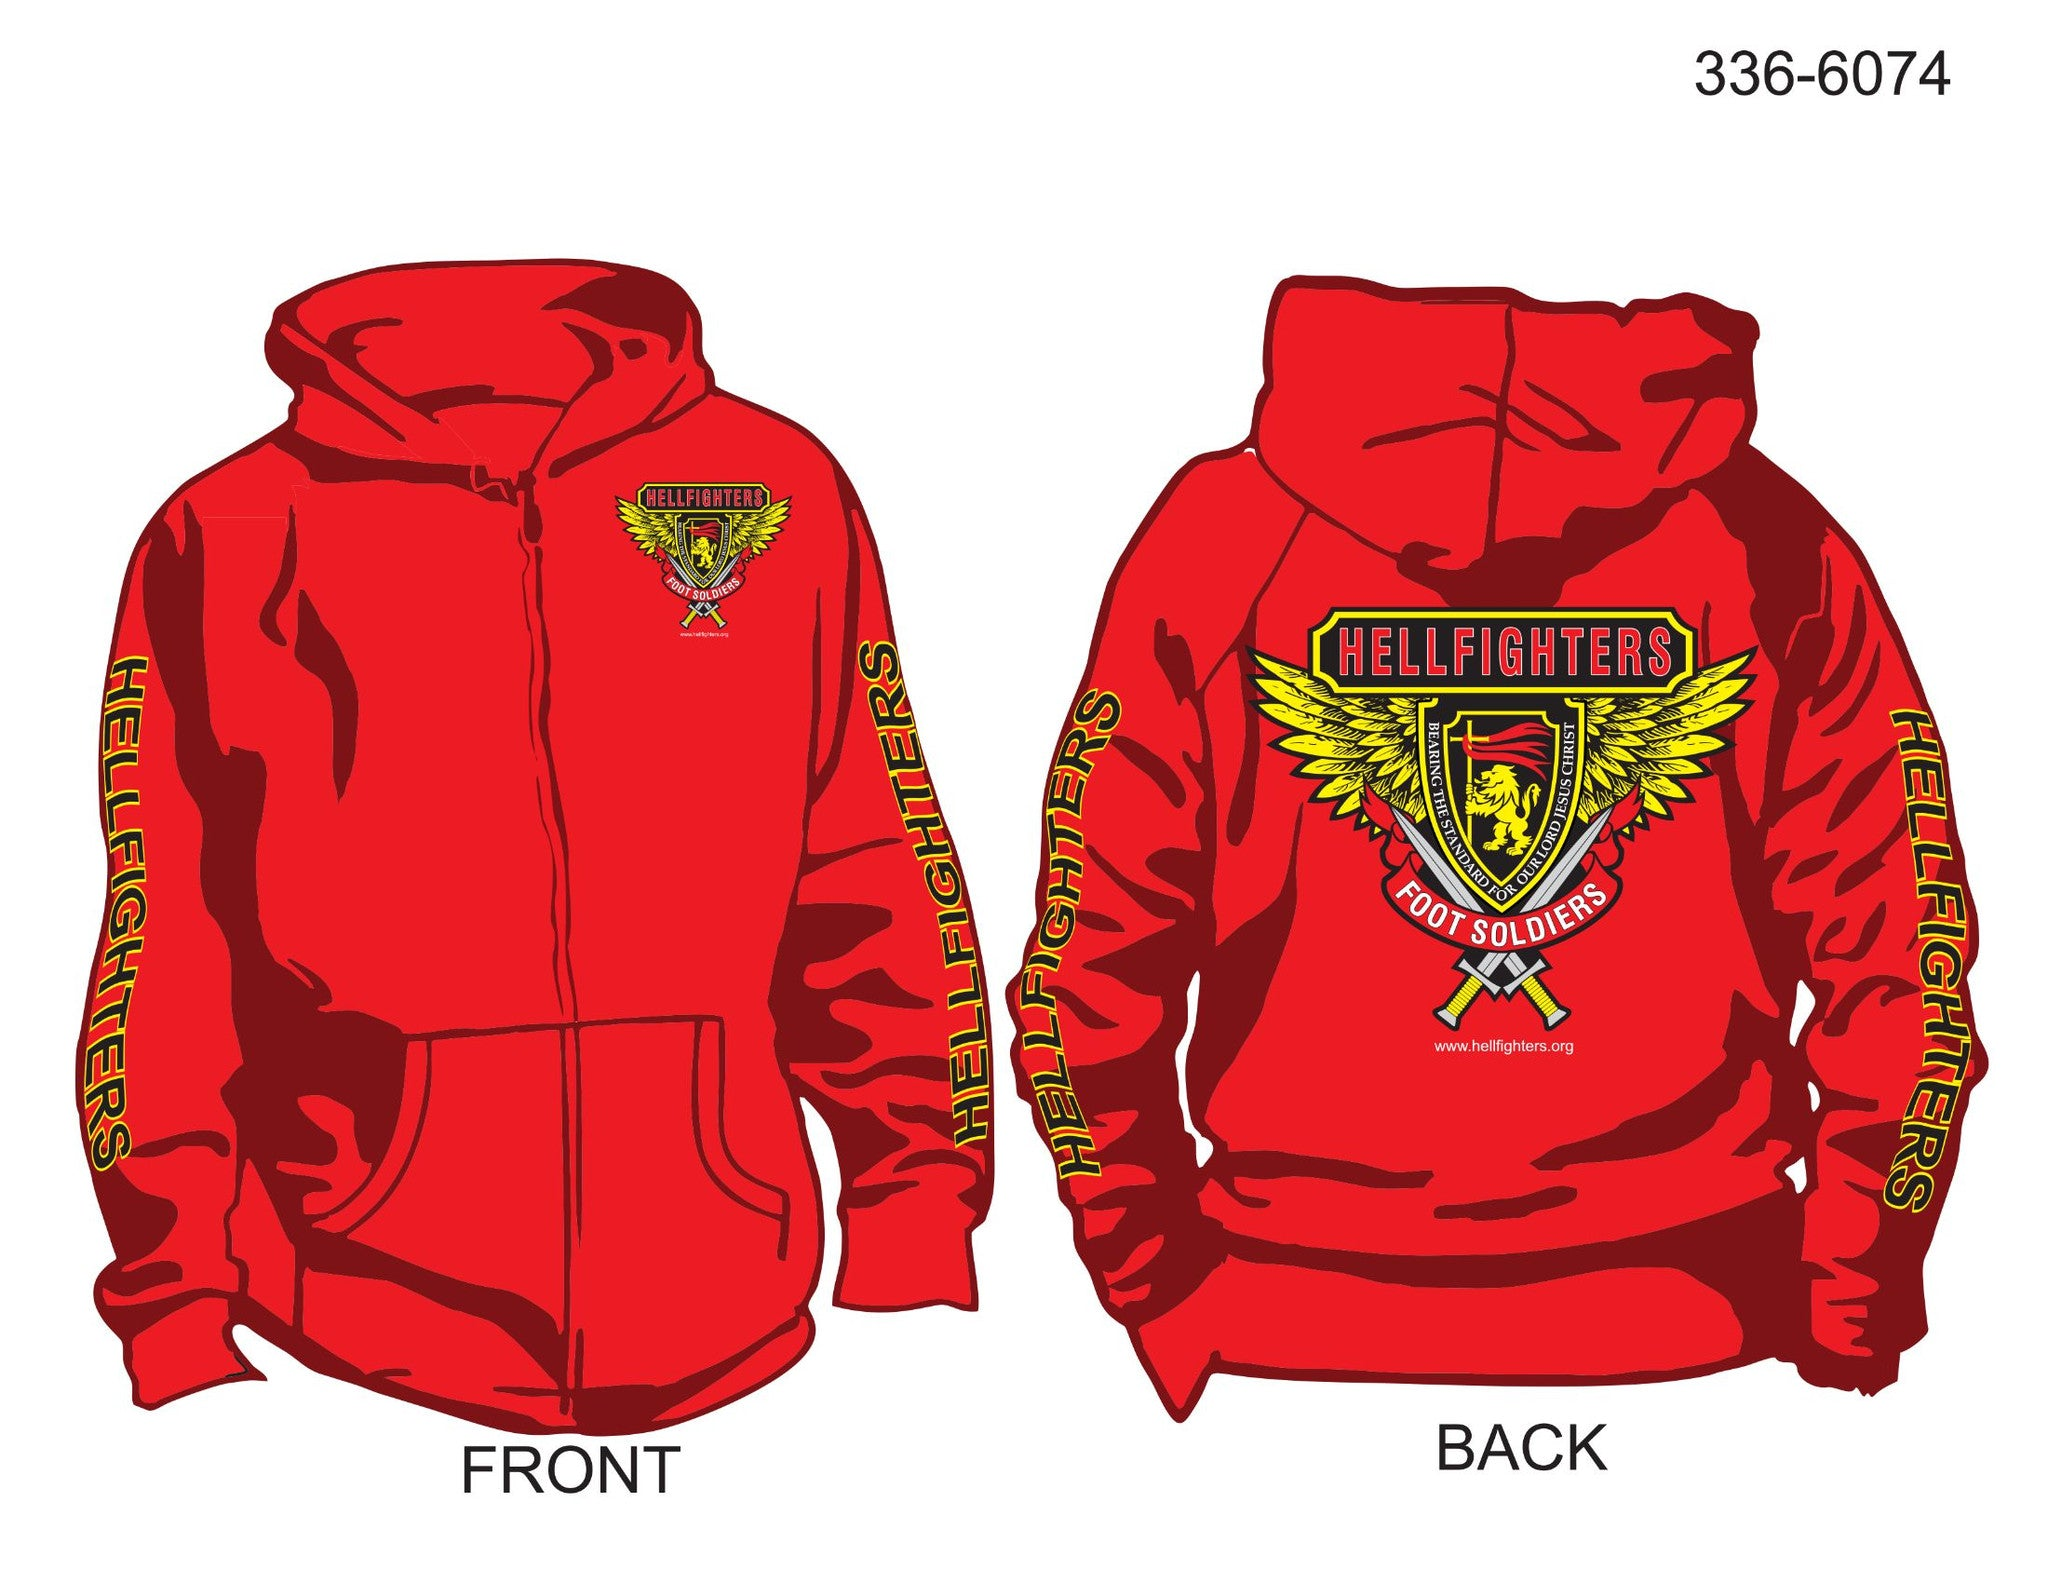 Hoodie, Long Sleeve, Hellfighter Foot Soldier (red, FS sleeves, zip-up)